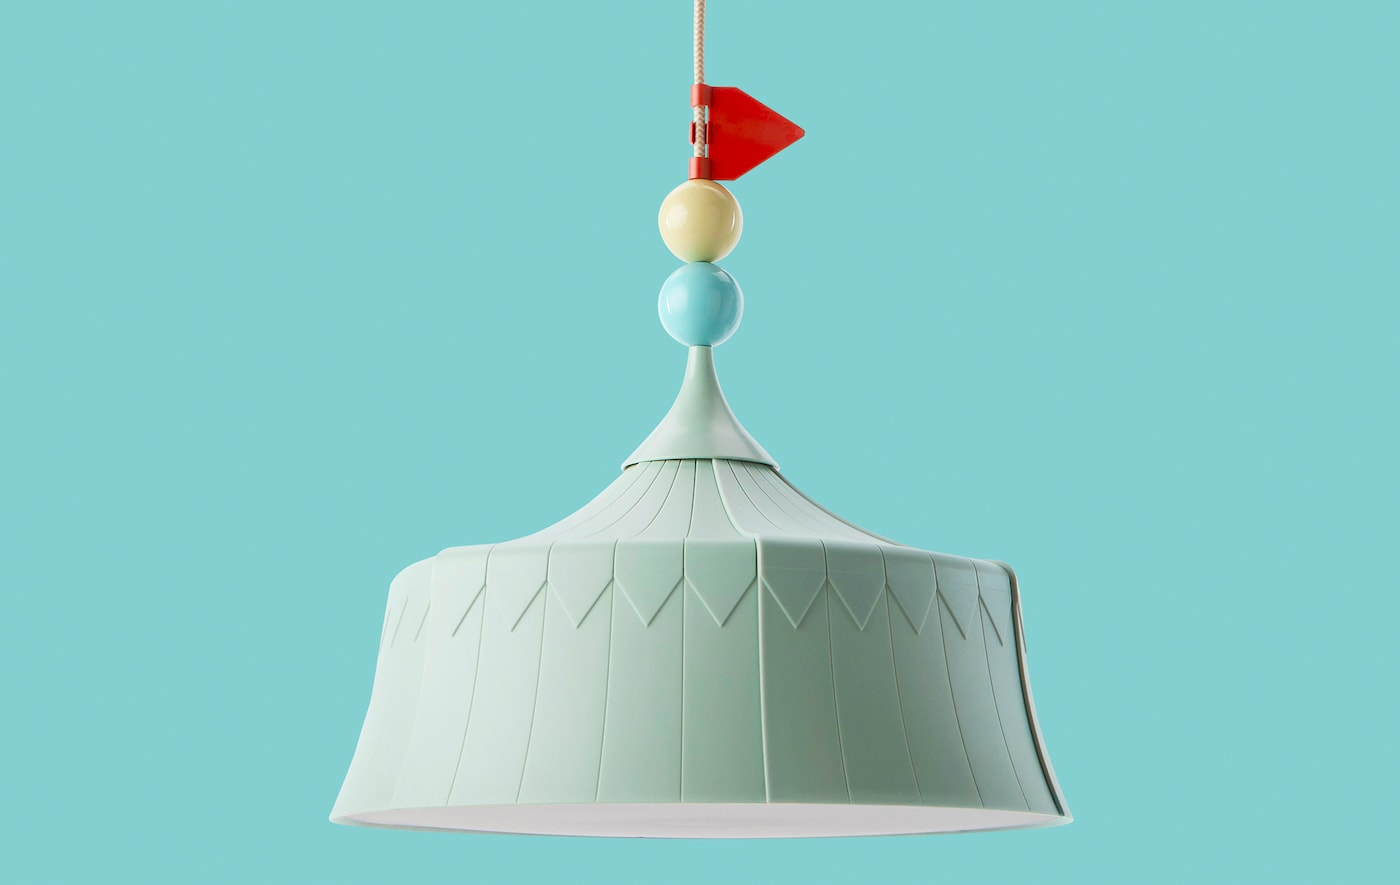 A pale green pendant light with circus tent design on a turquoise backdrop.